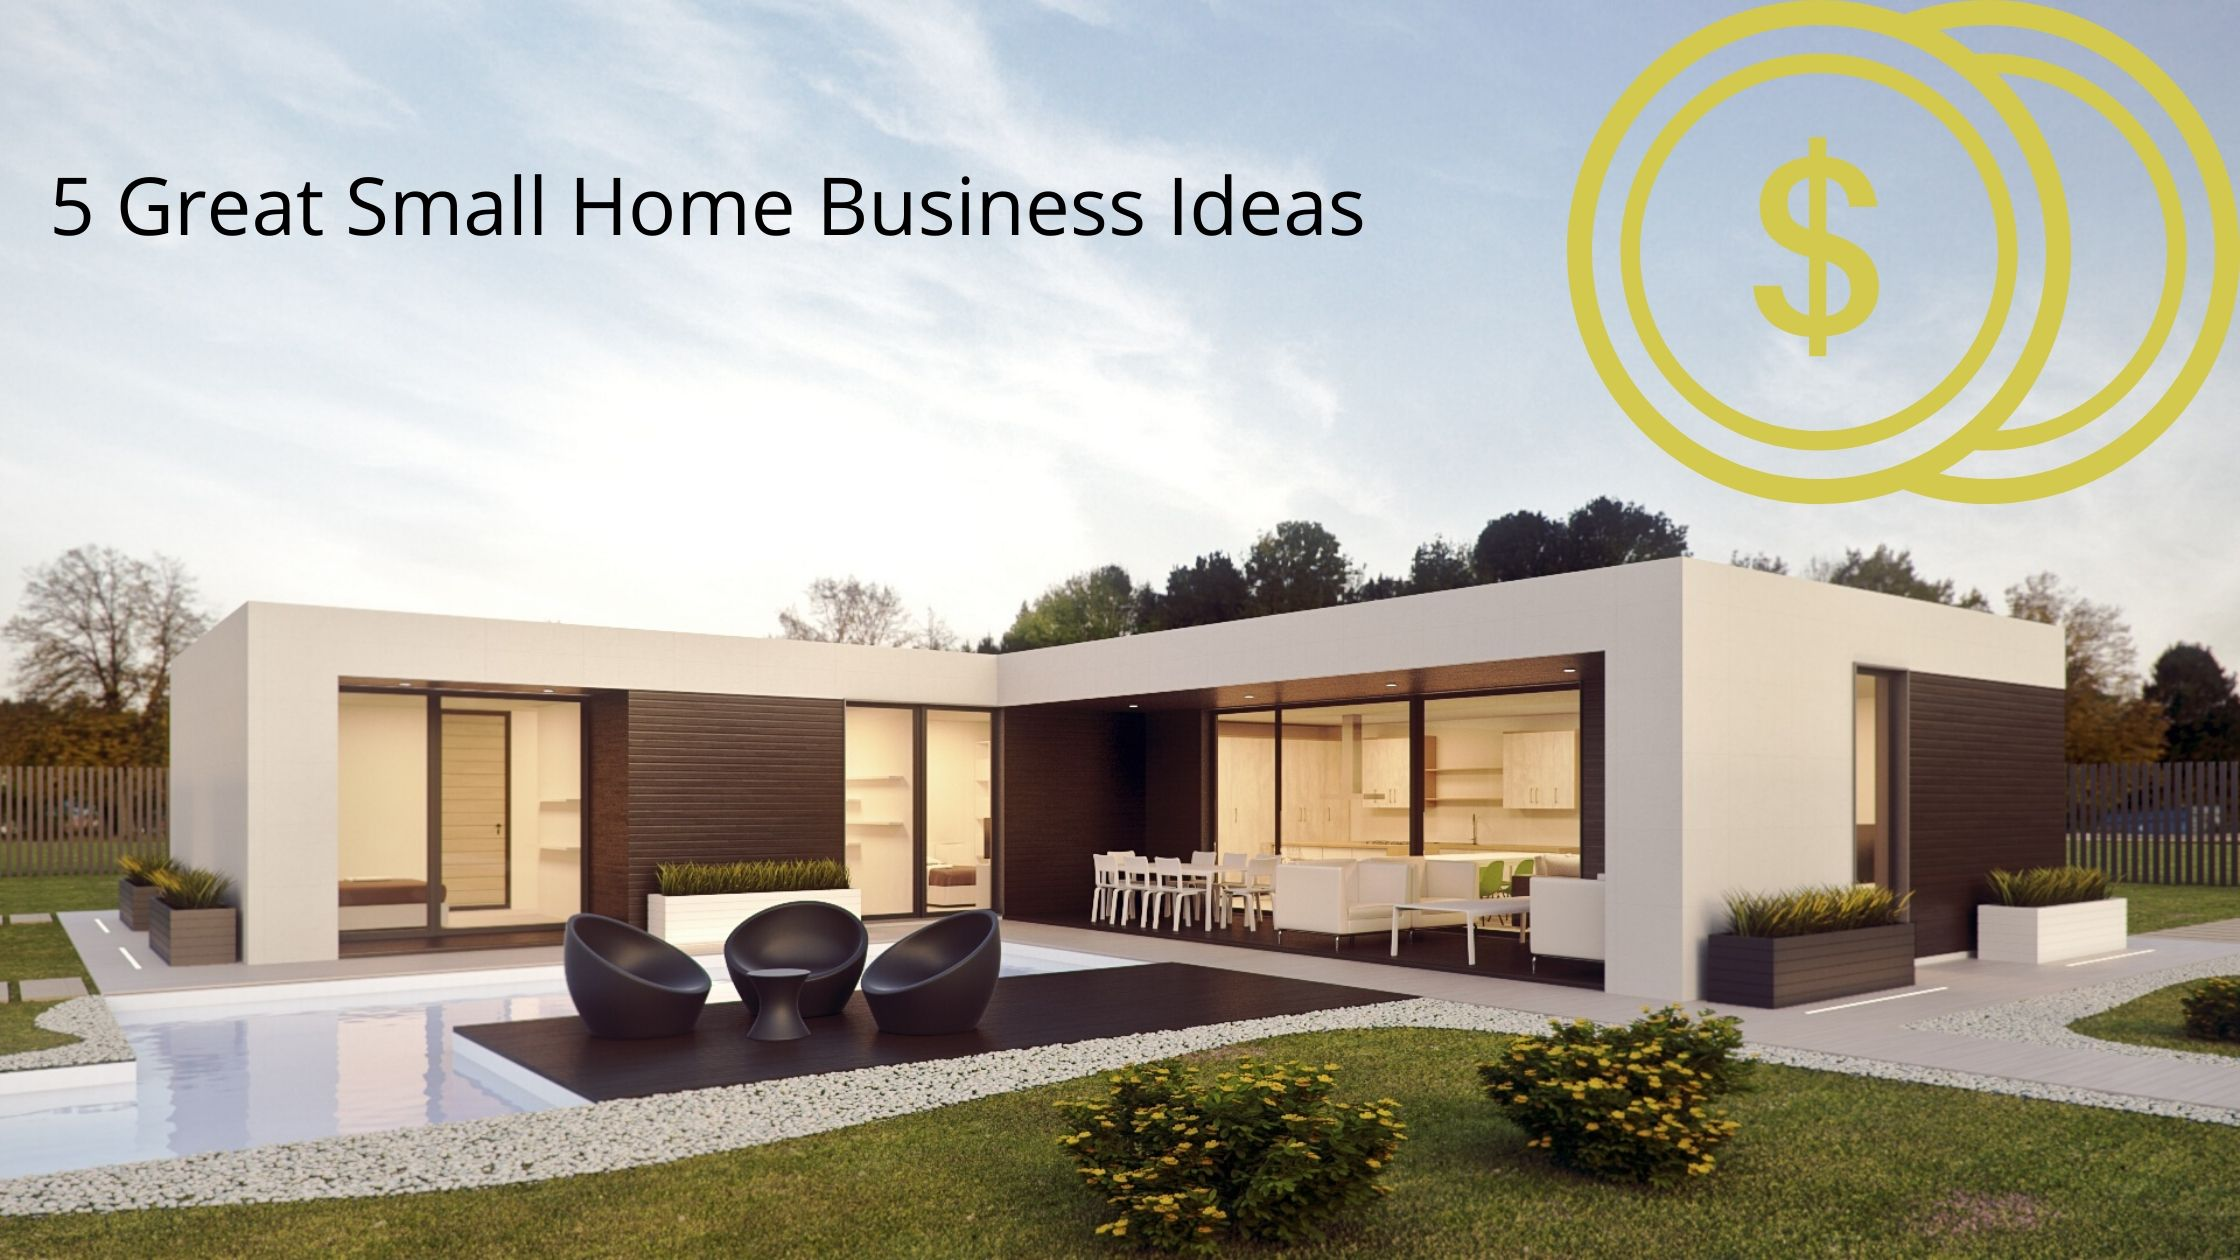 5 Great Small Home Business Ideas